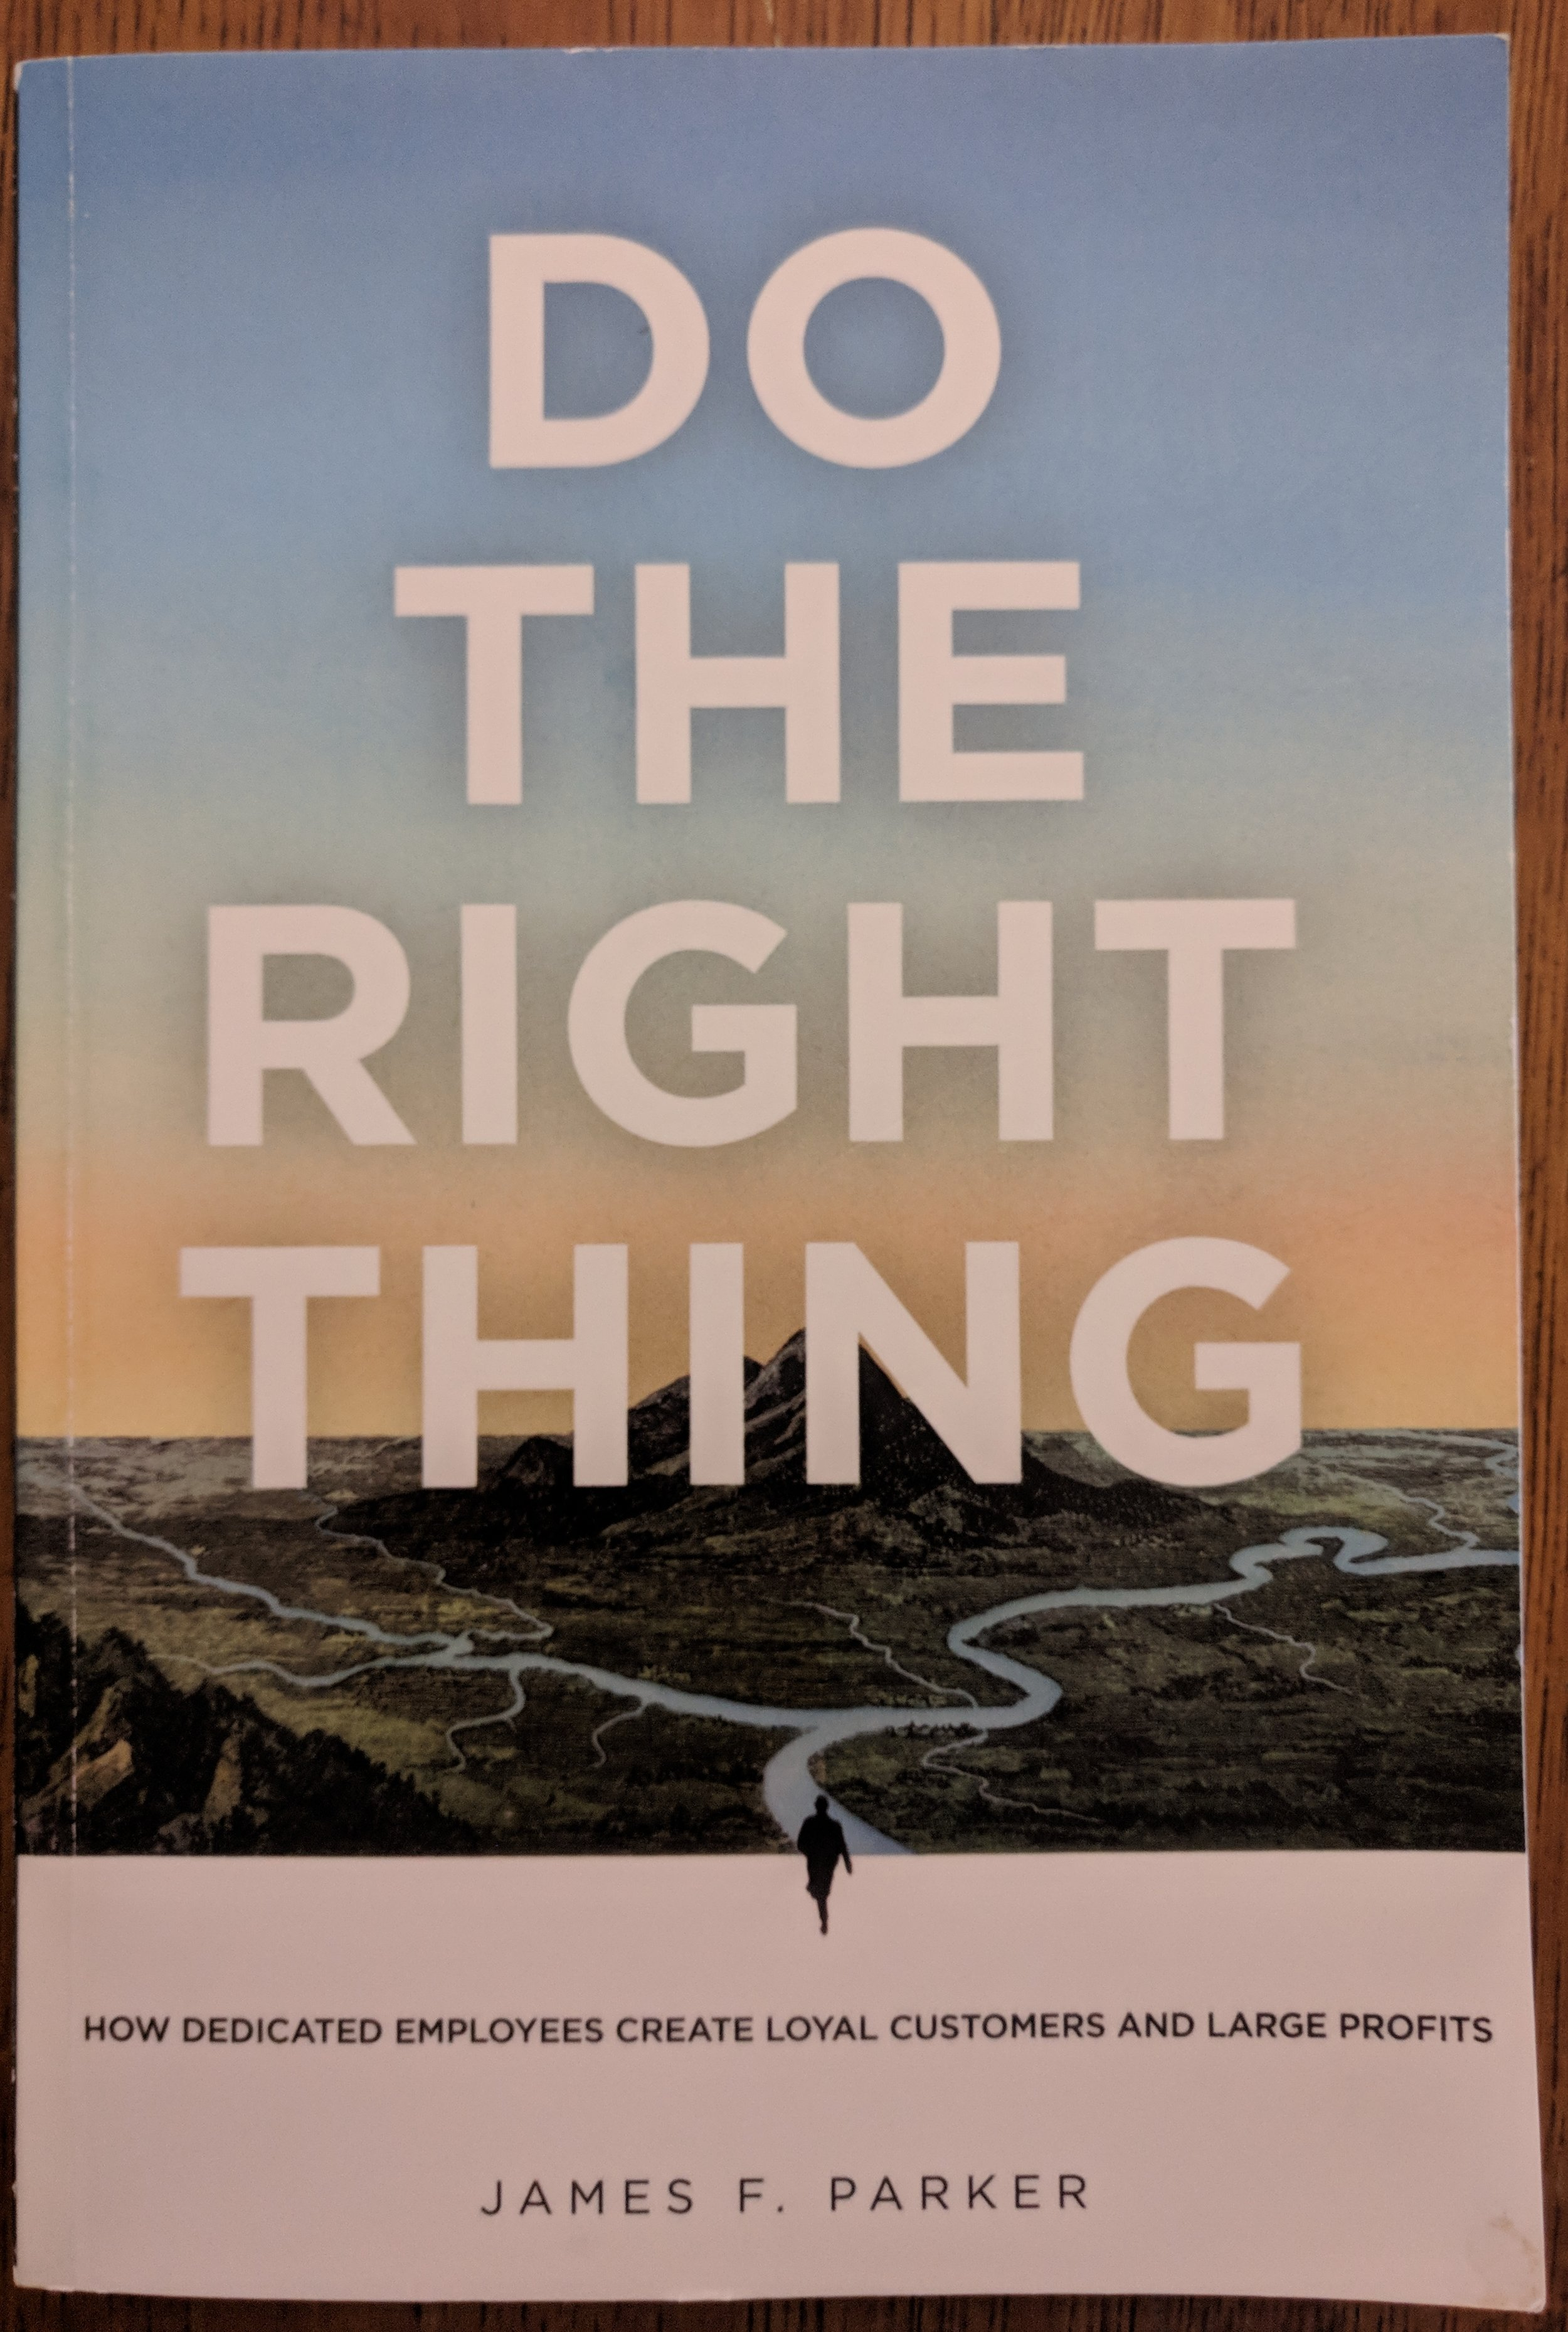 Do the Right Thing  - How Dedicated Employees Create Loyal Customers and Large Profits